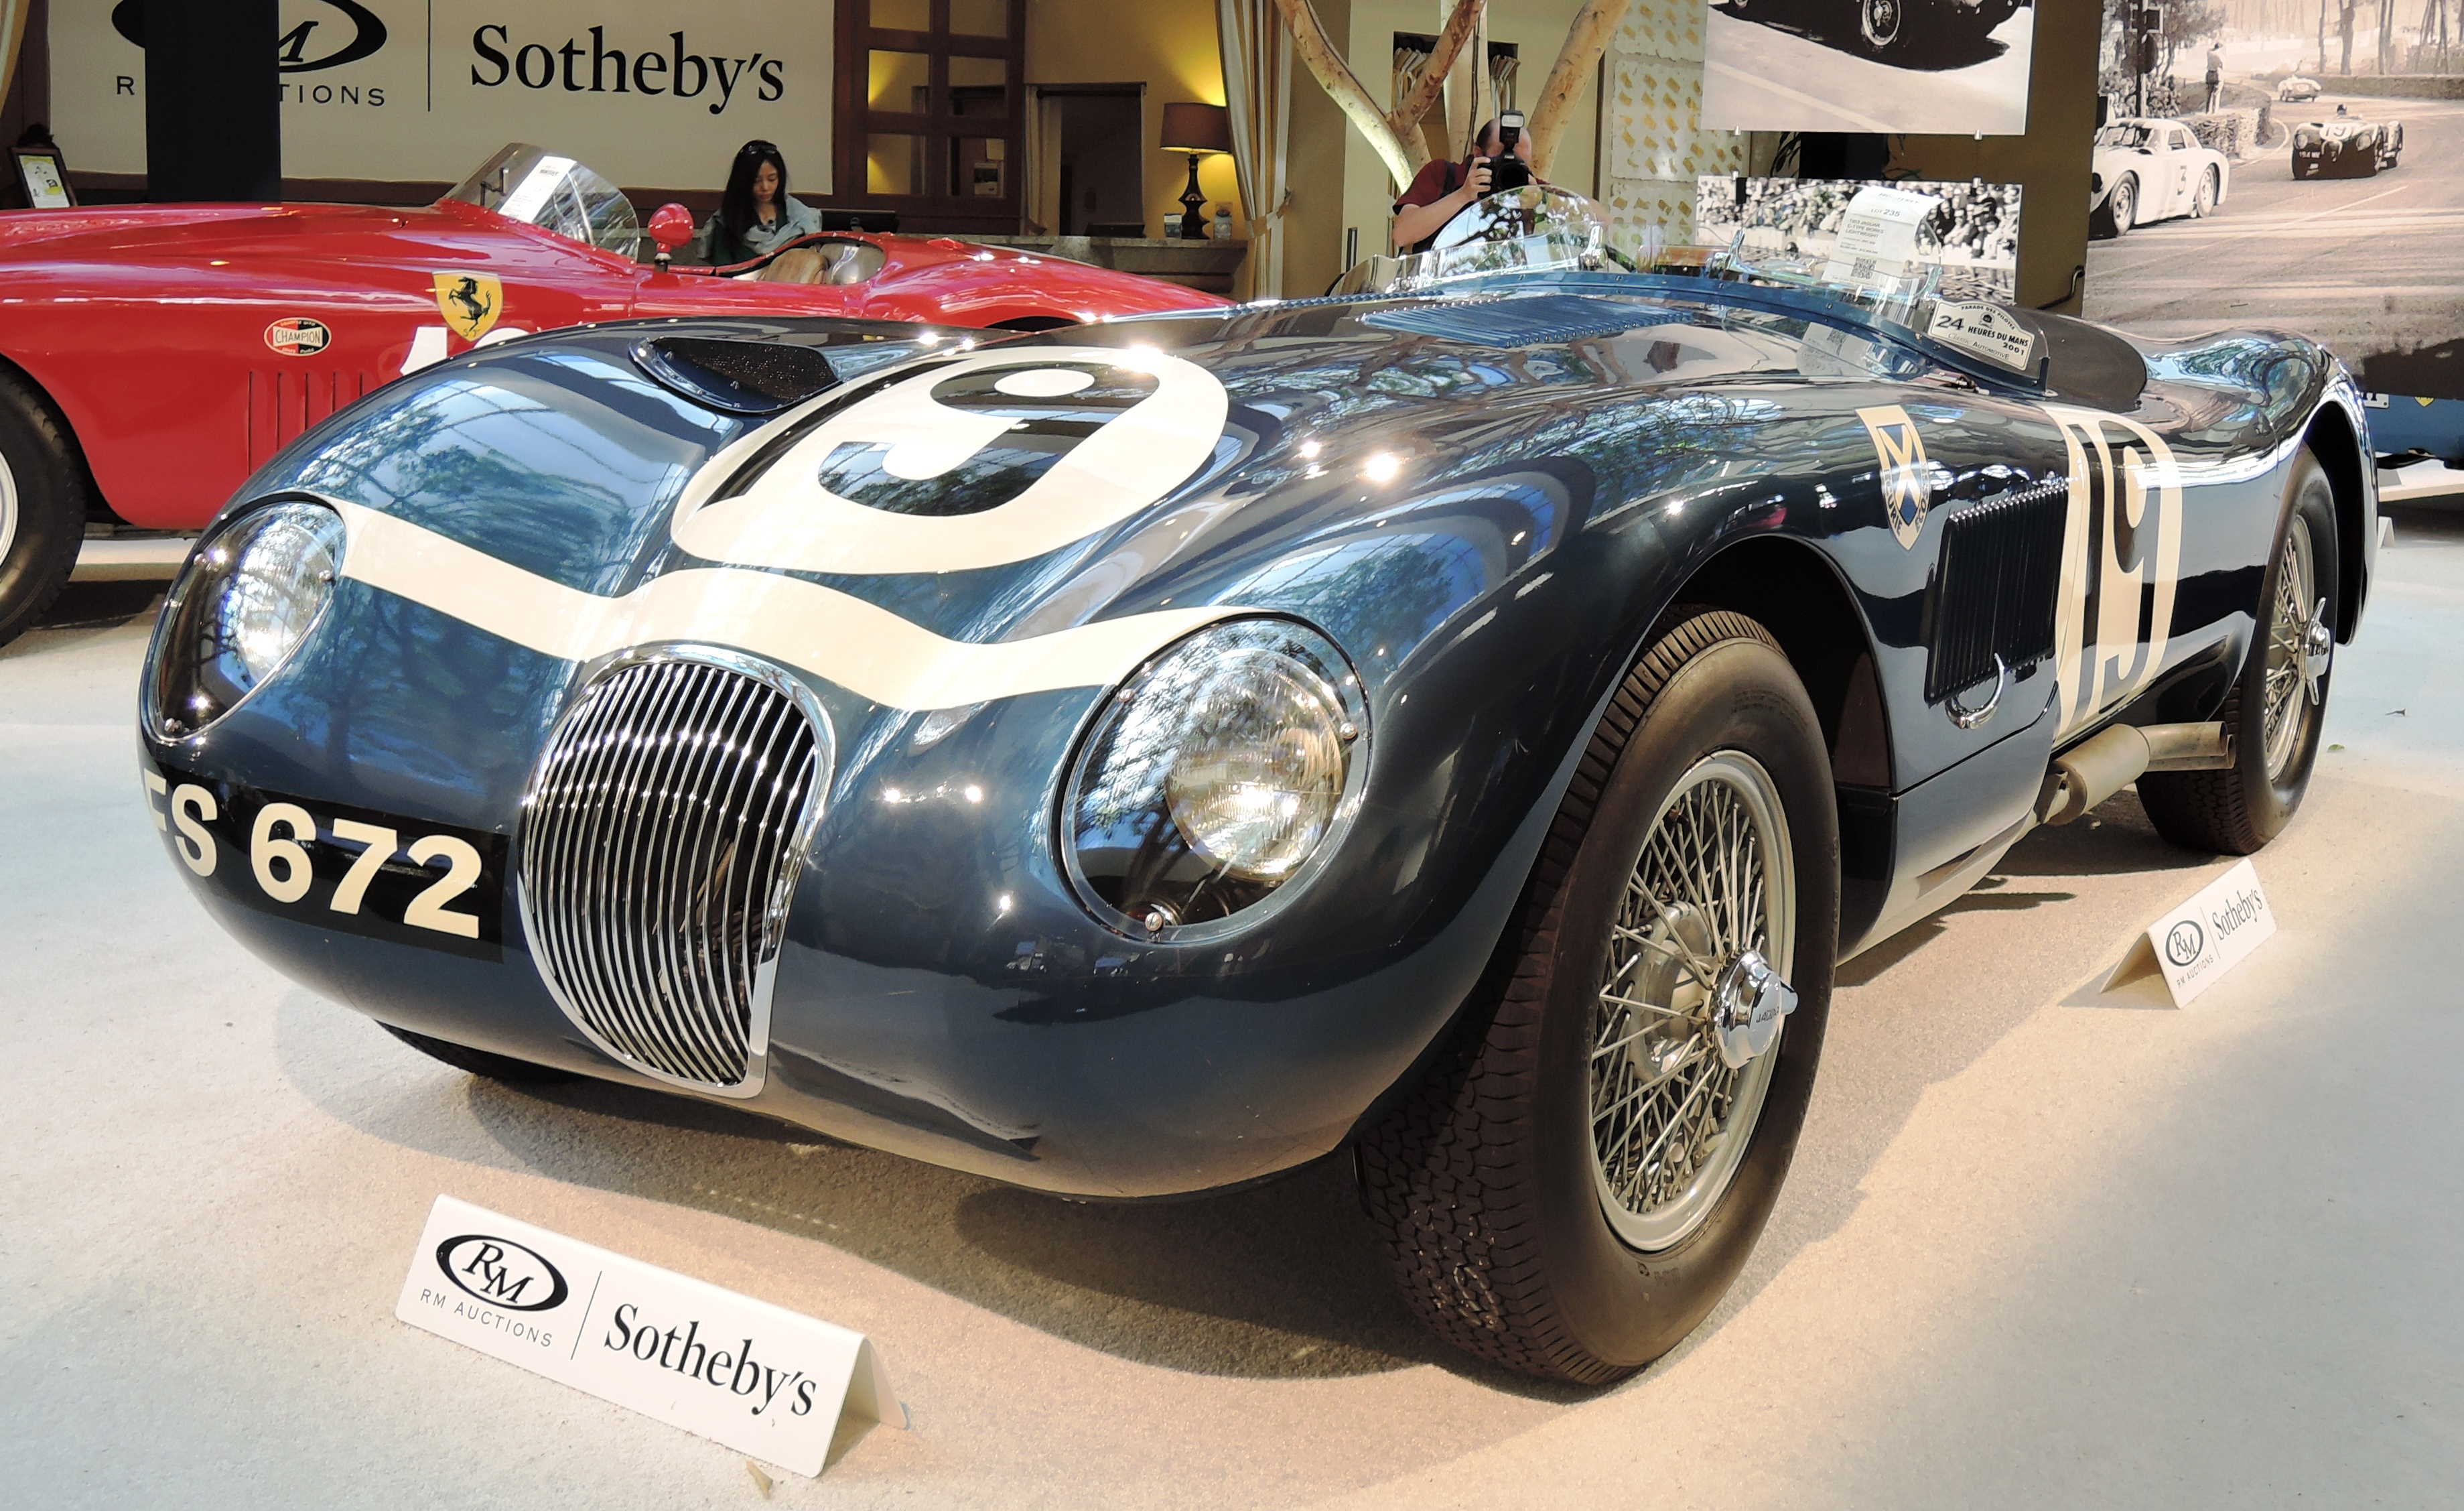 1953 Jaguar C-Type Works Lightweight - classic car auctions